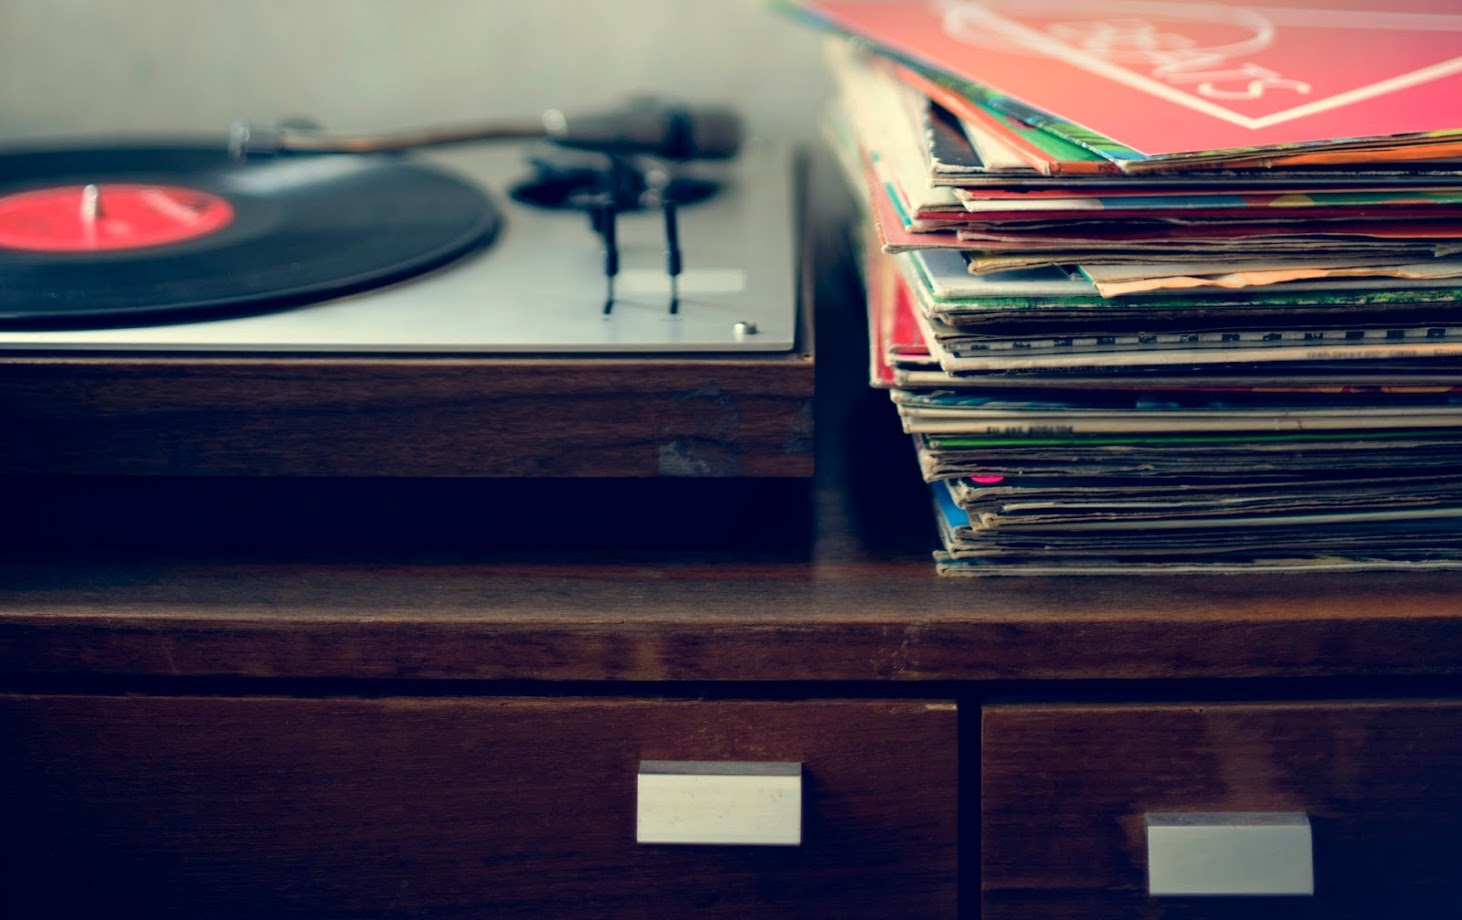 How to Properly Store Your Vinyl Records